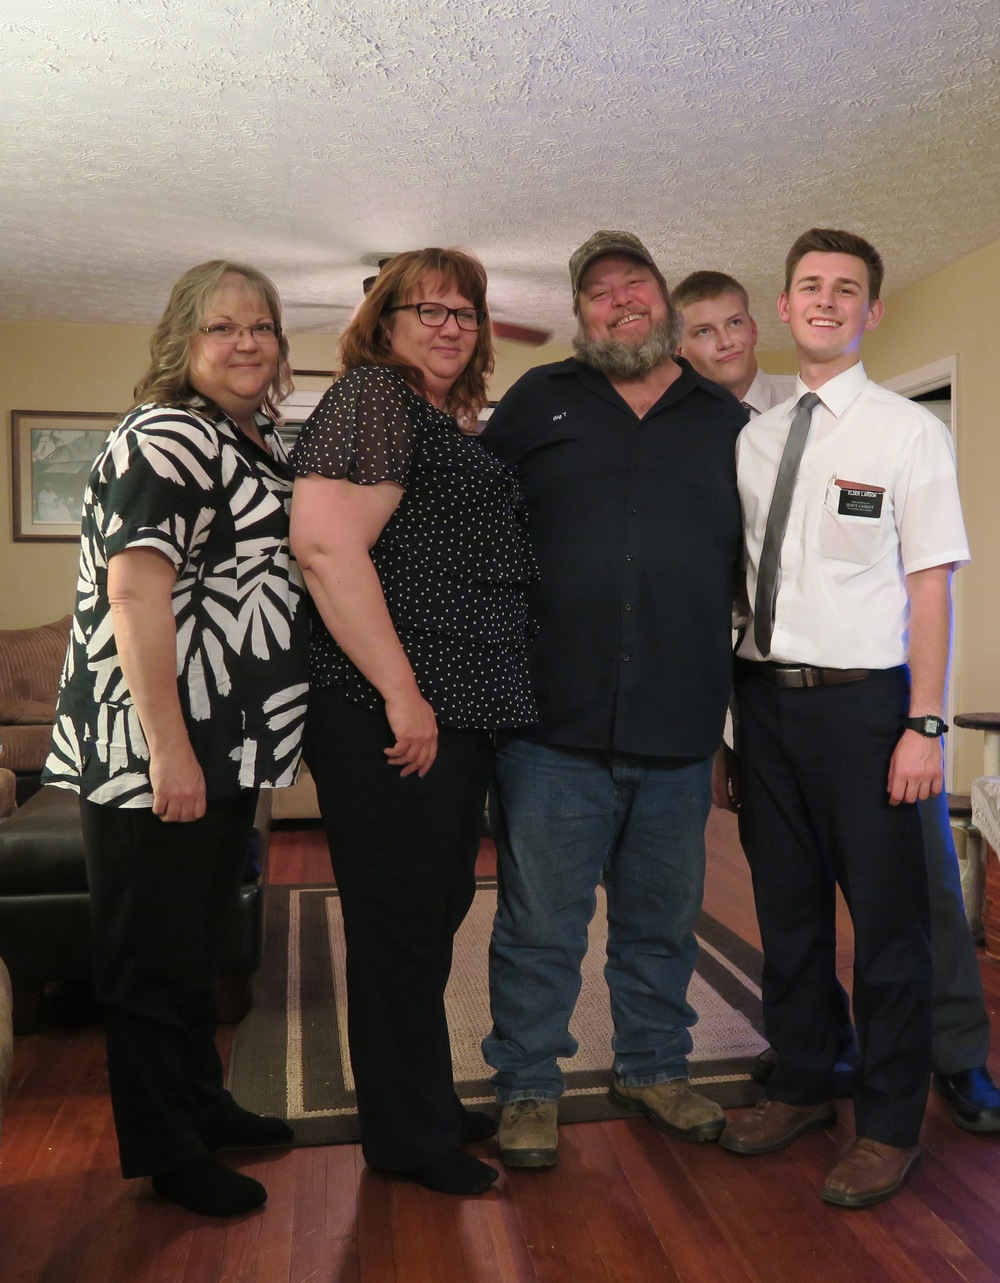 Elder Larson, Elder Thalman, Big T, Kendra and Cindy